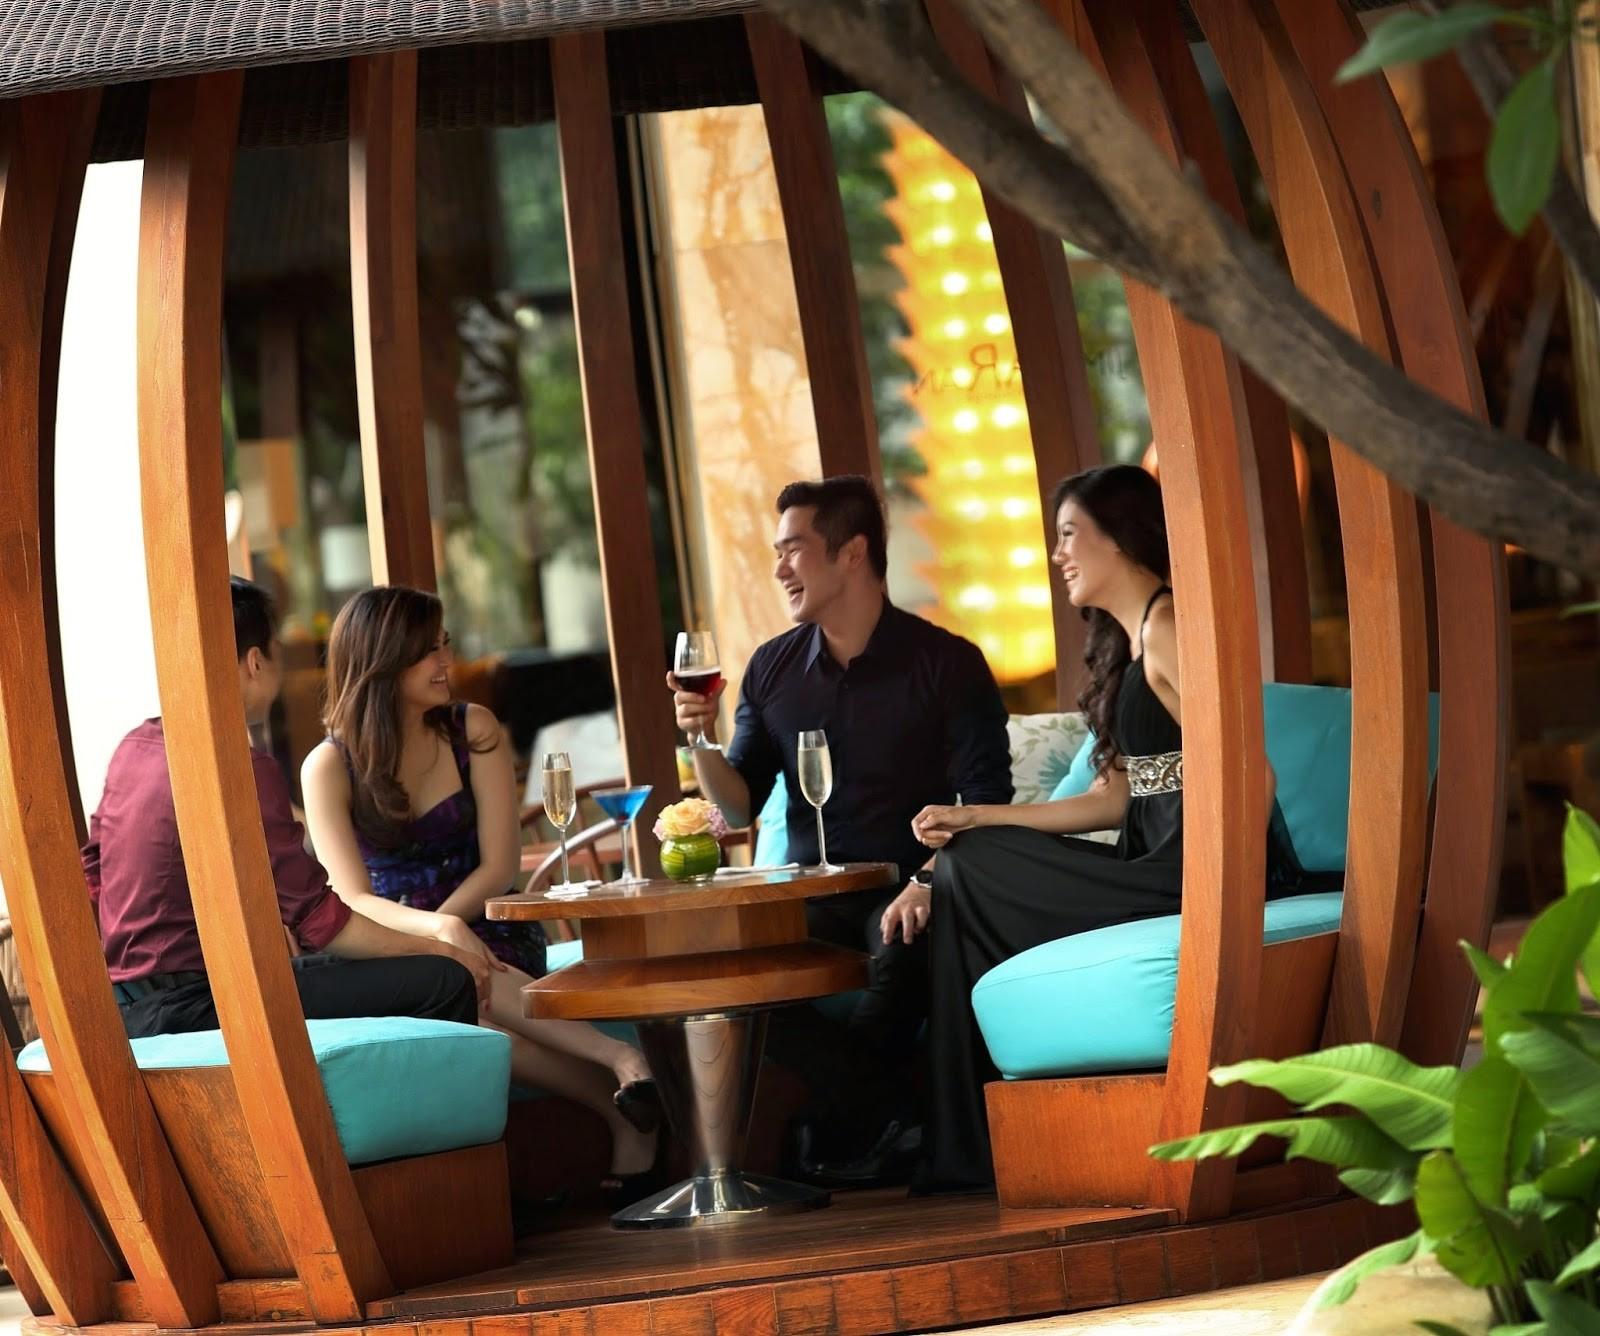 InterContinental Jakarta MidPlaza has brought tropical sophistication to the inner city following the highly anticipated launch of its JimBARan Outdoor